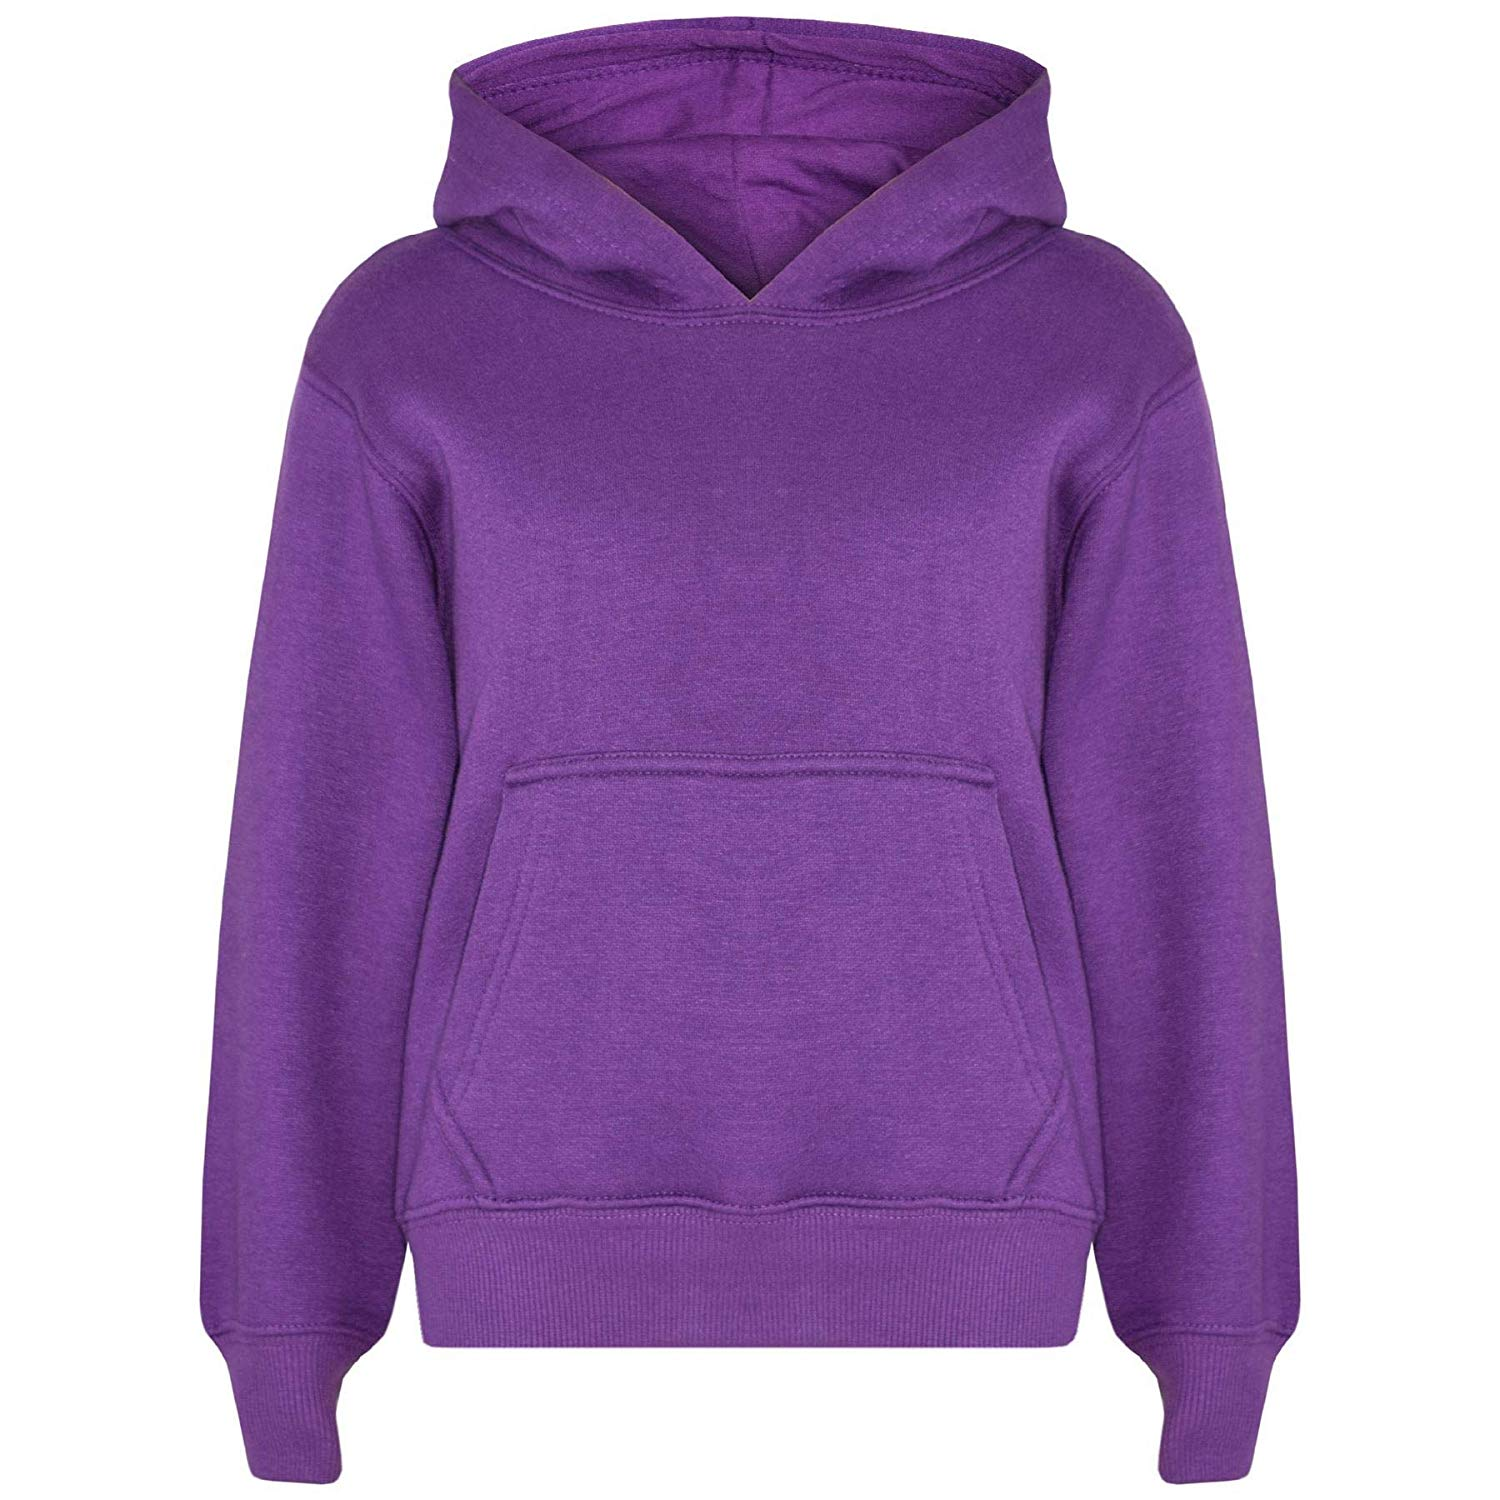 6c2246875da Get Quotations · Kids Girls Boys Sweatshirt Tops Plain Purple Hooded  Jumpers Hoodies Age 2-13 Yr